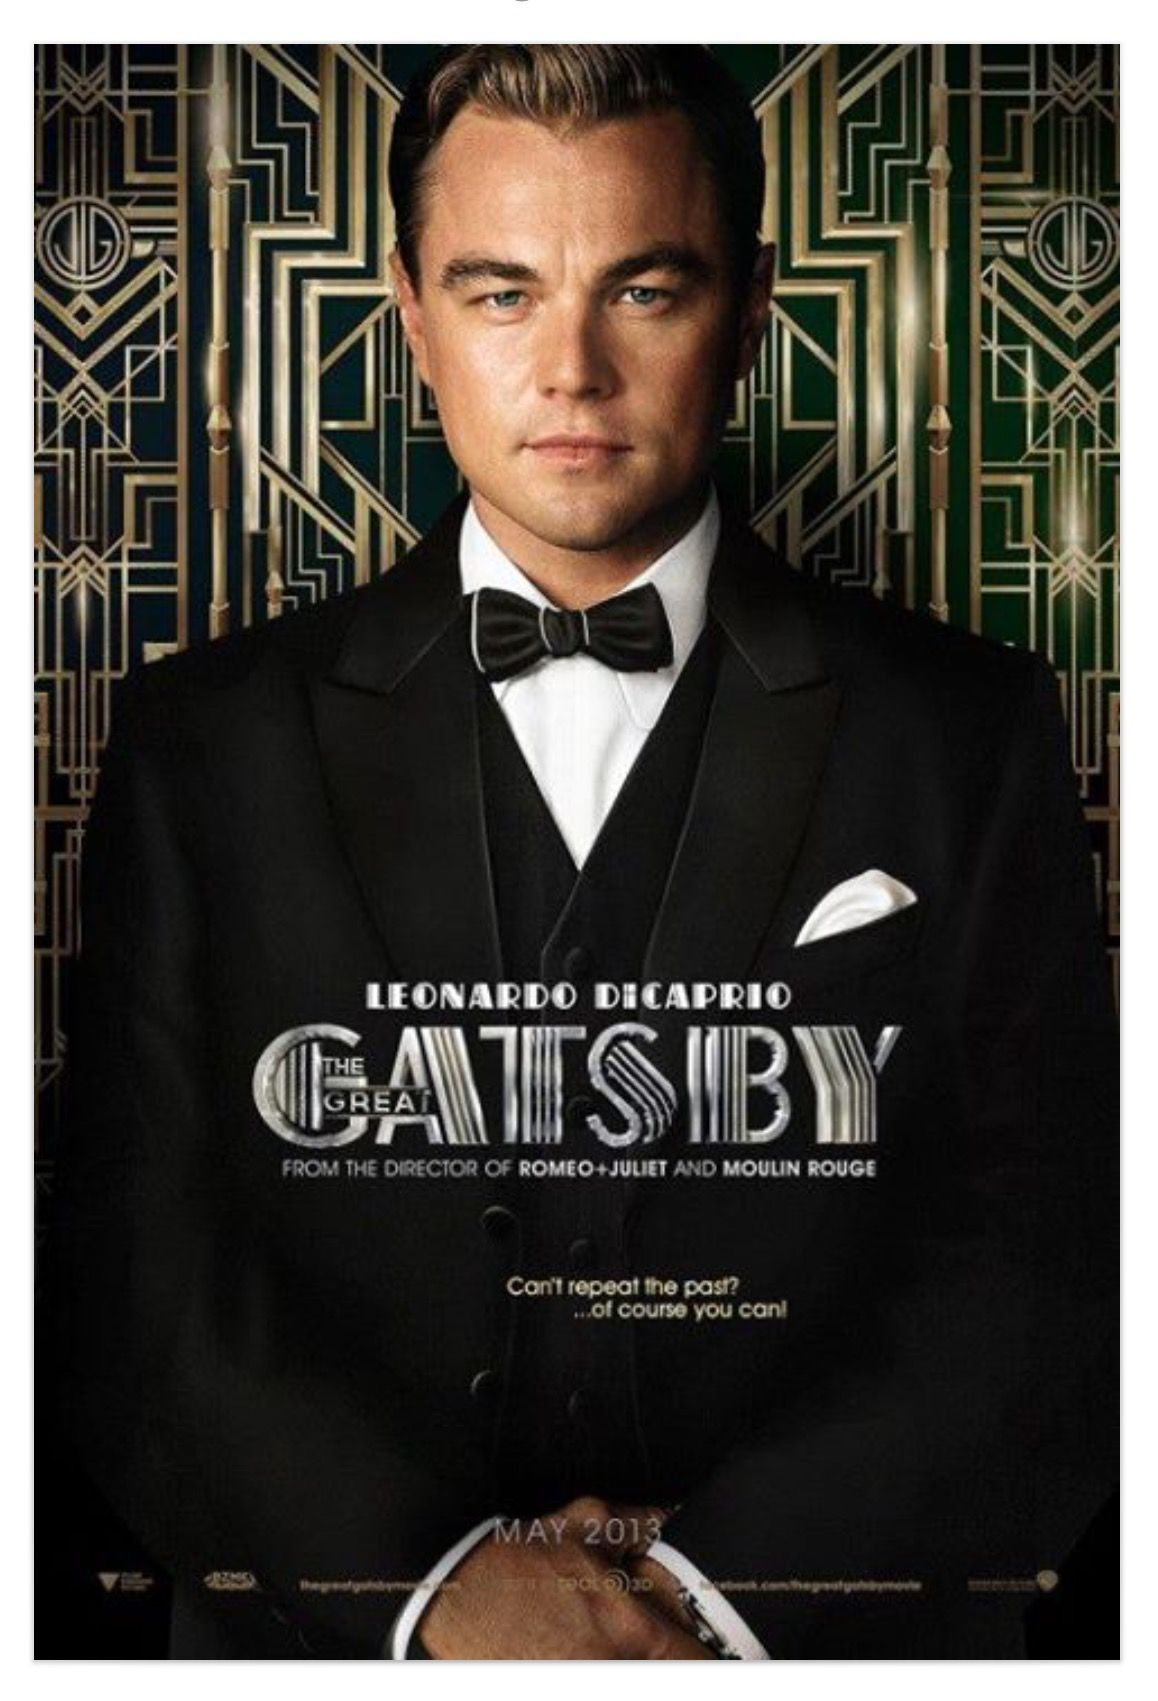 Gatsby movie image by maryann petri on movies the great